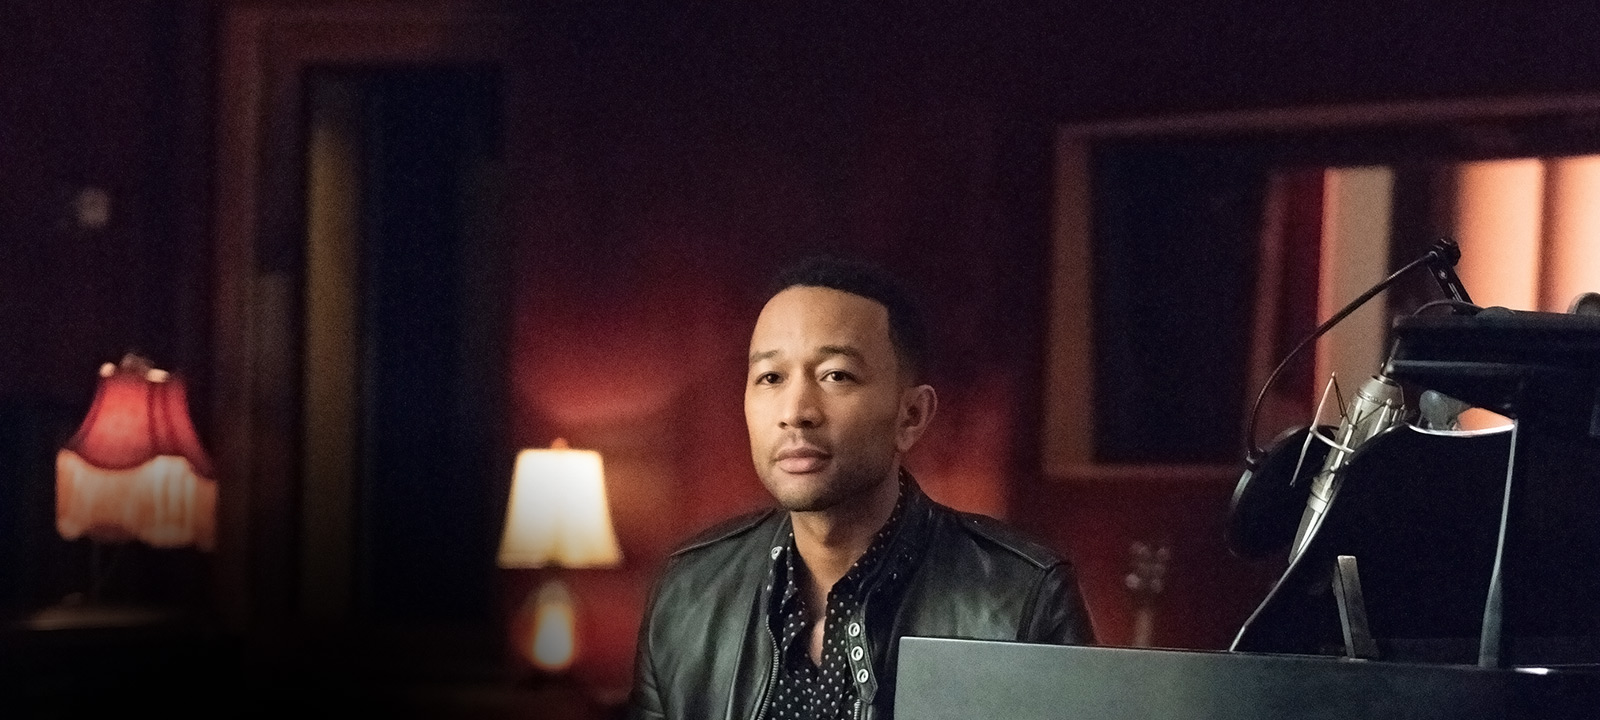 hip-hop-songs-that-shook-america-101-john-legend-800×600